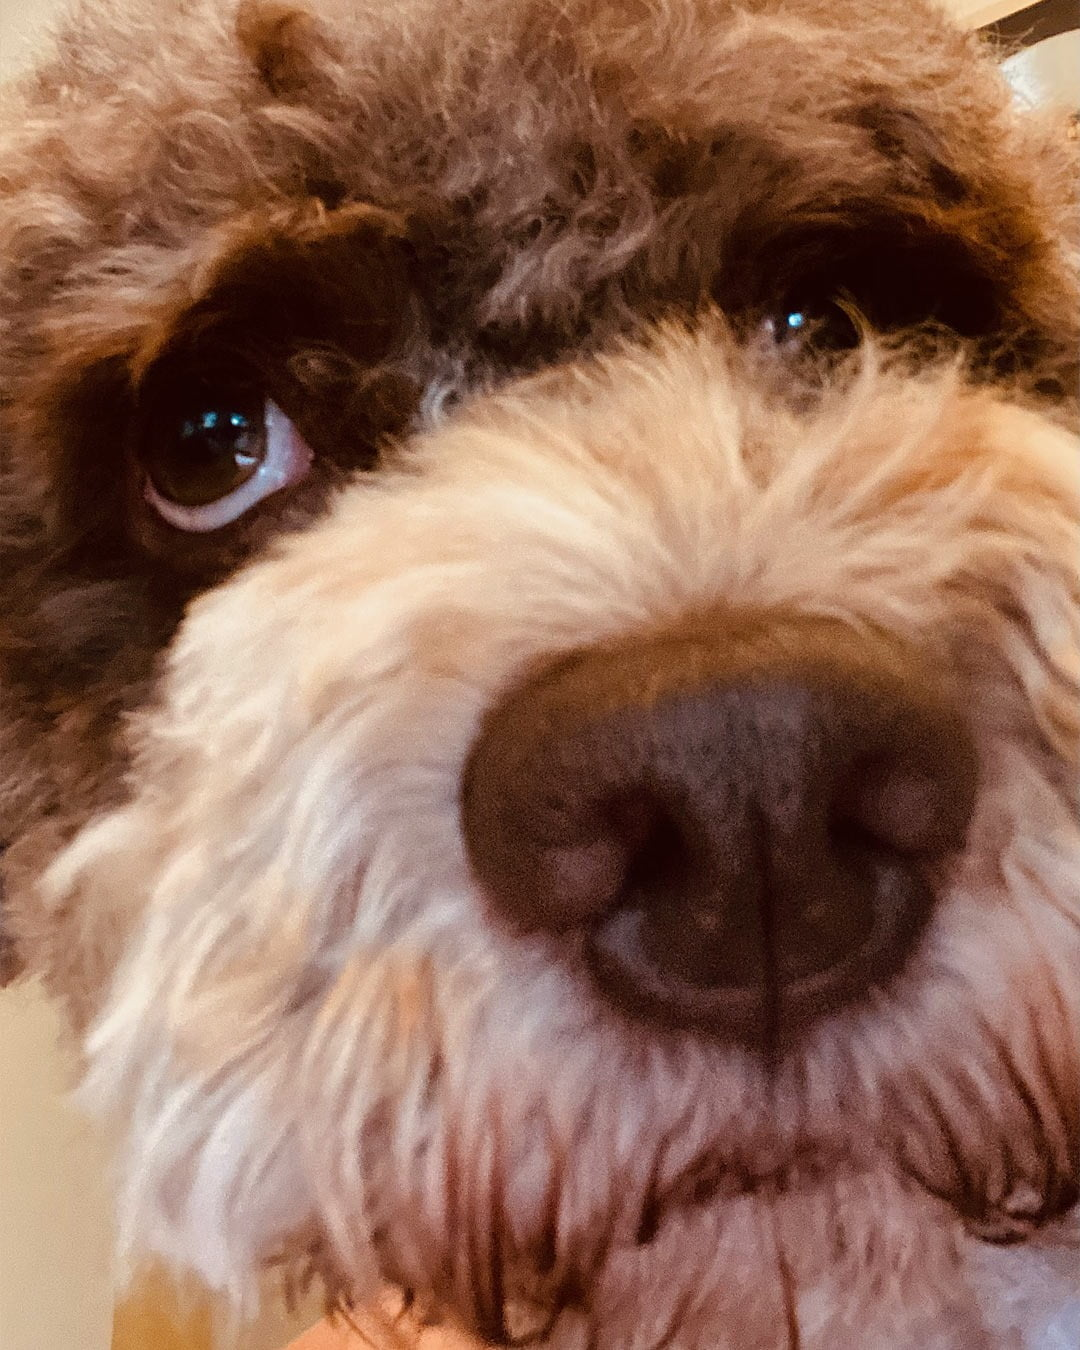 This is a close up of me. Look how fantastic i am.#lagottosofinstagram #lagottopuppy #italianwaterdog #truffledog  #lagottoromagnolo_daily #happydoglife #Lagotto #Dogs #DogsOfInstagram #Petstagram #Pets #Dogstagram #MyLife #MyDailyLife #PappaJagVillHaEnItalienare  #MacLagotto #Falun #Sweden #FF #l4l #instafollow @knappare @liminglindblad @k.rowntree @taxen_coco @h3lvetesjavlar This was posted by my Dad: @kristerlindholmfalun